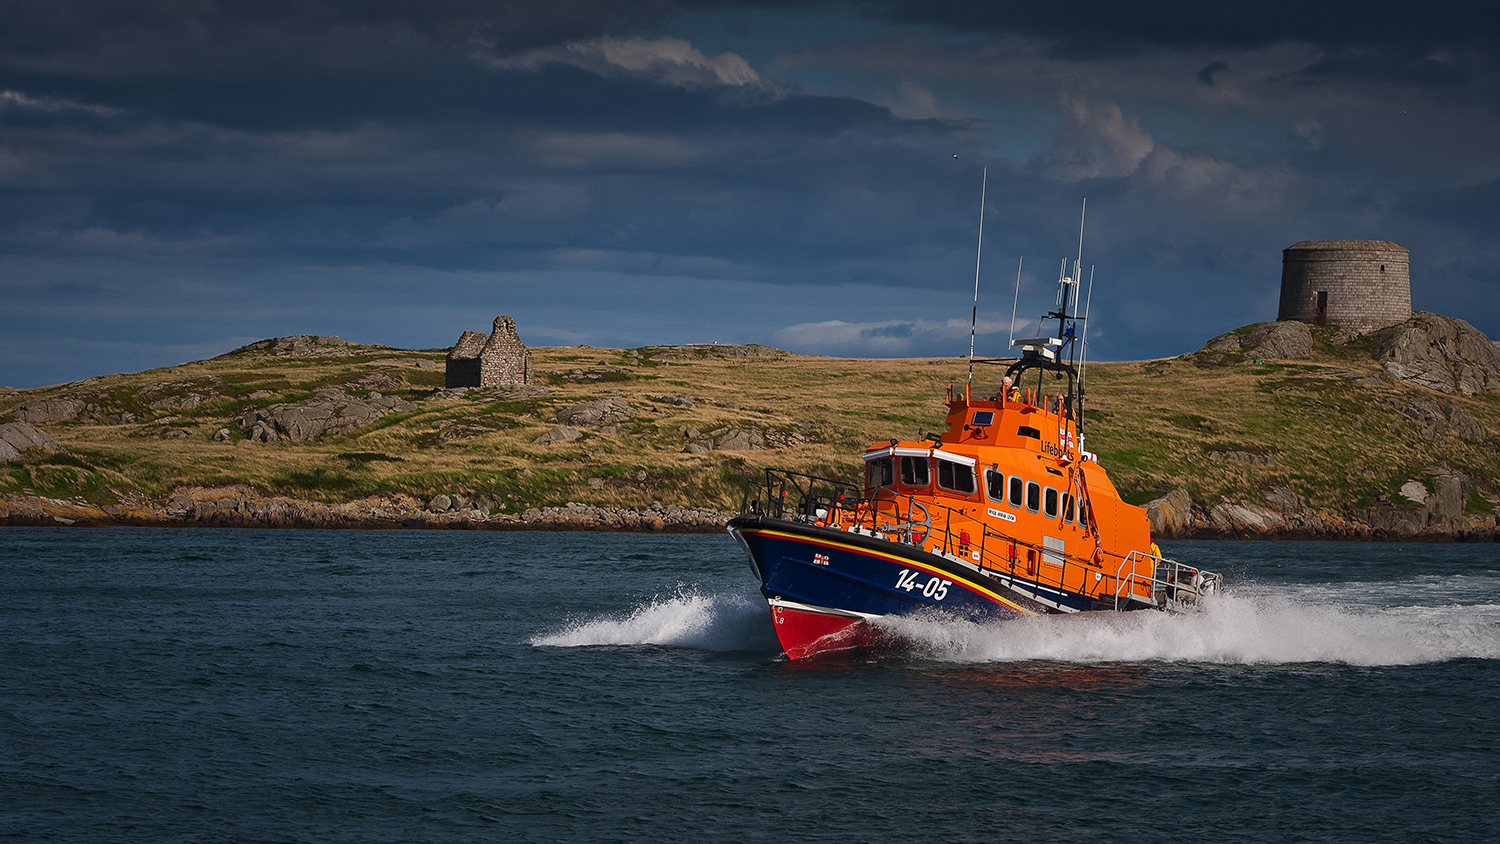 Dun Laoghaire RNLI's Trent class lifeboat, Anna Livia 14-05, at sea